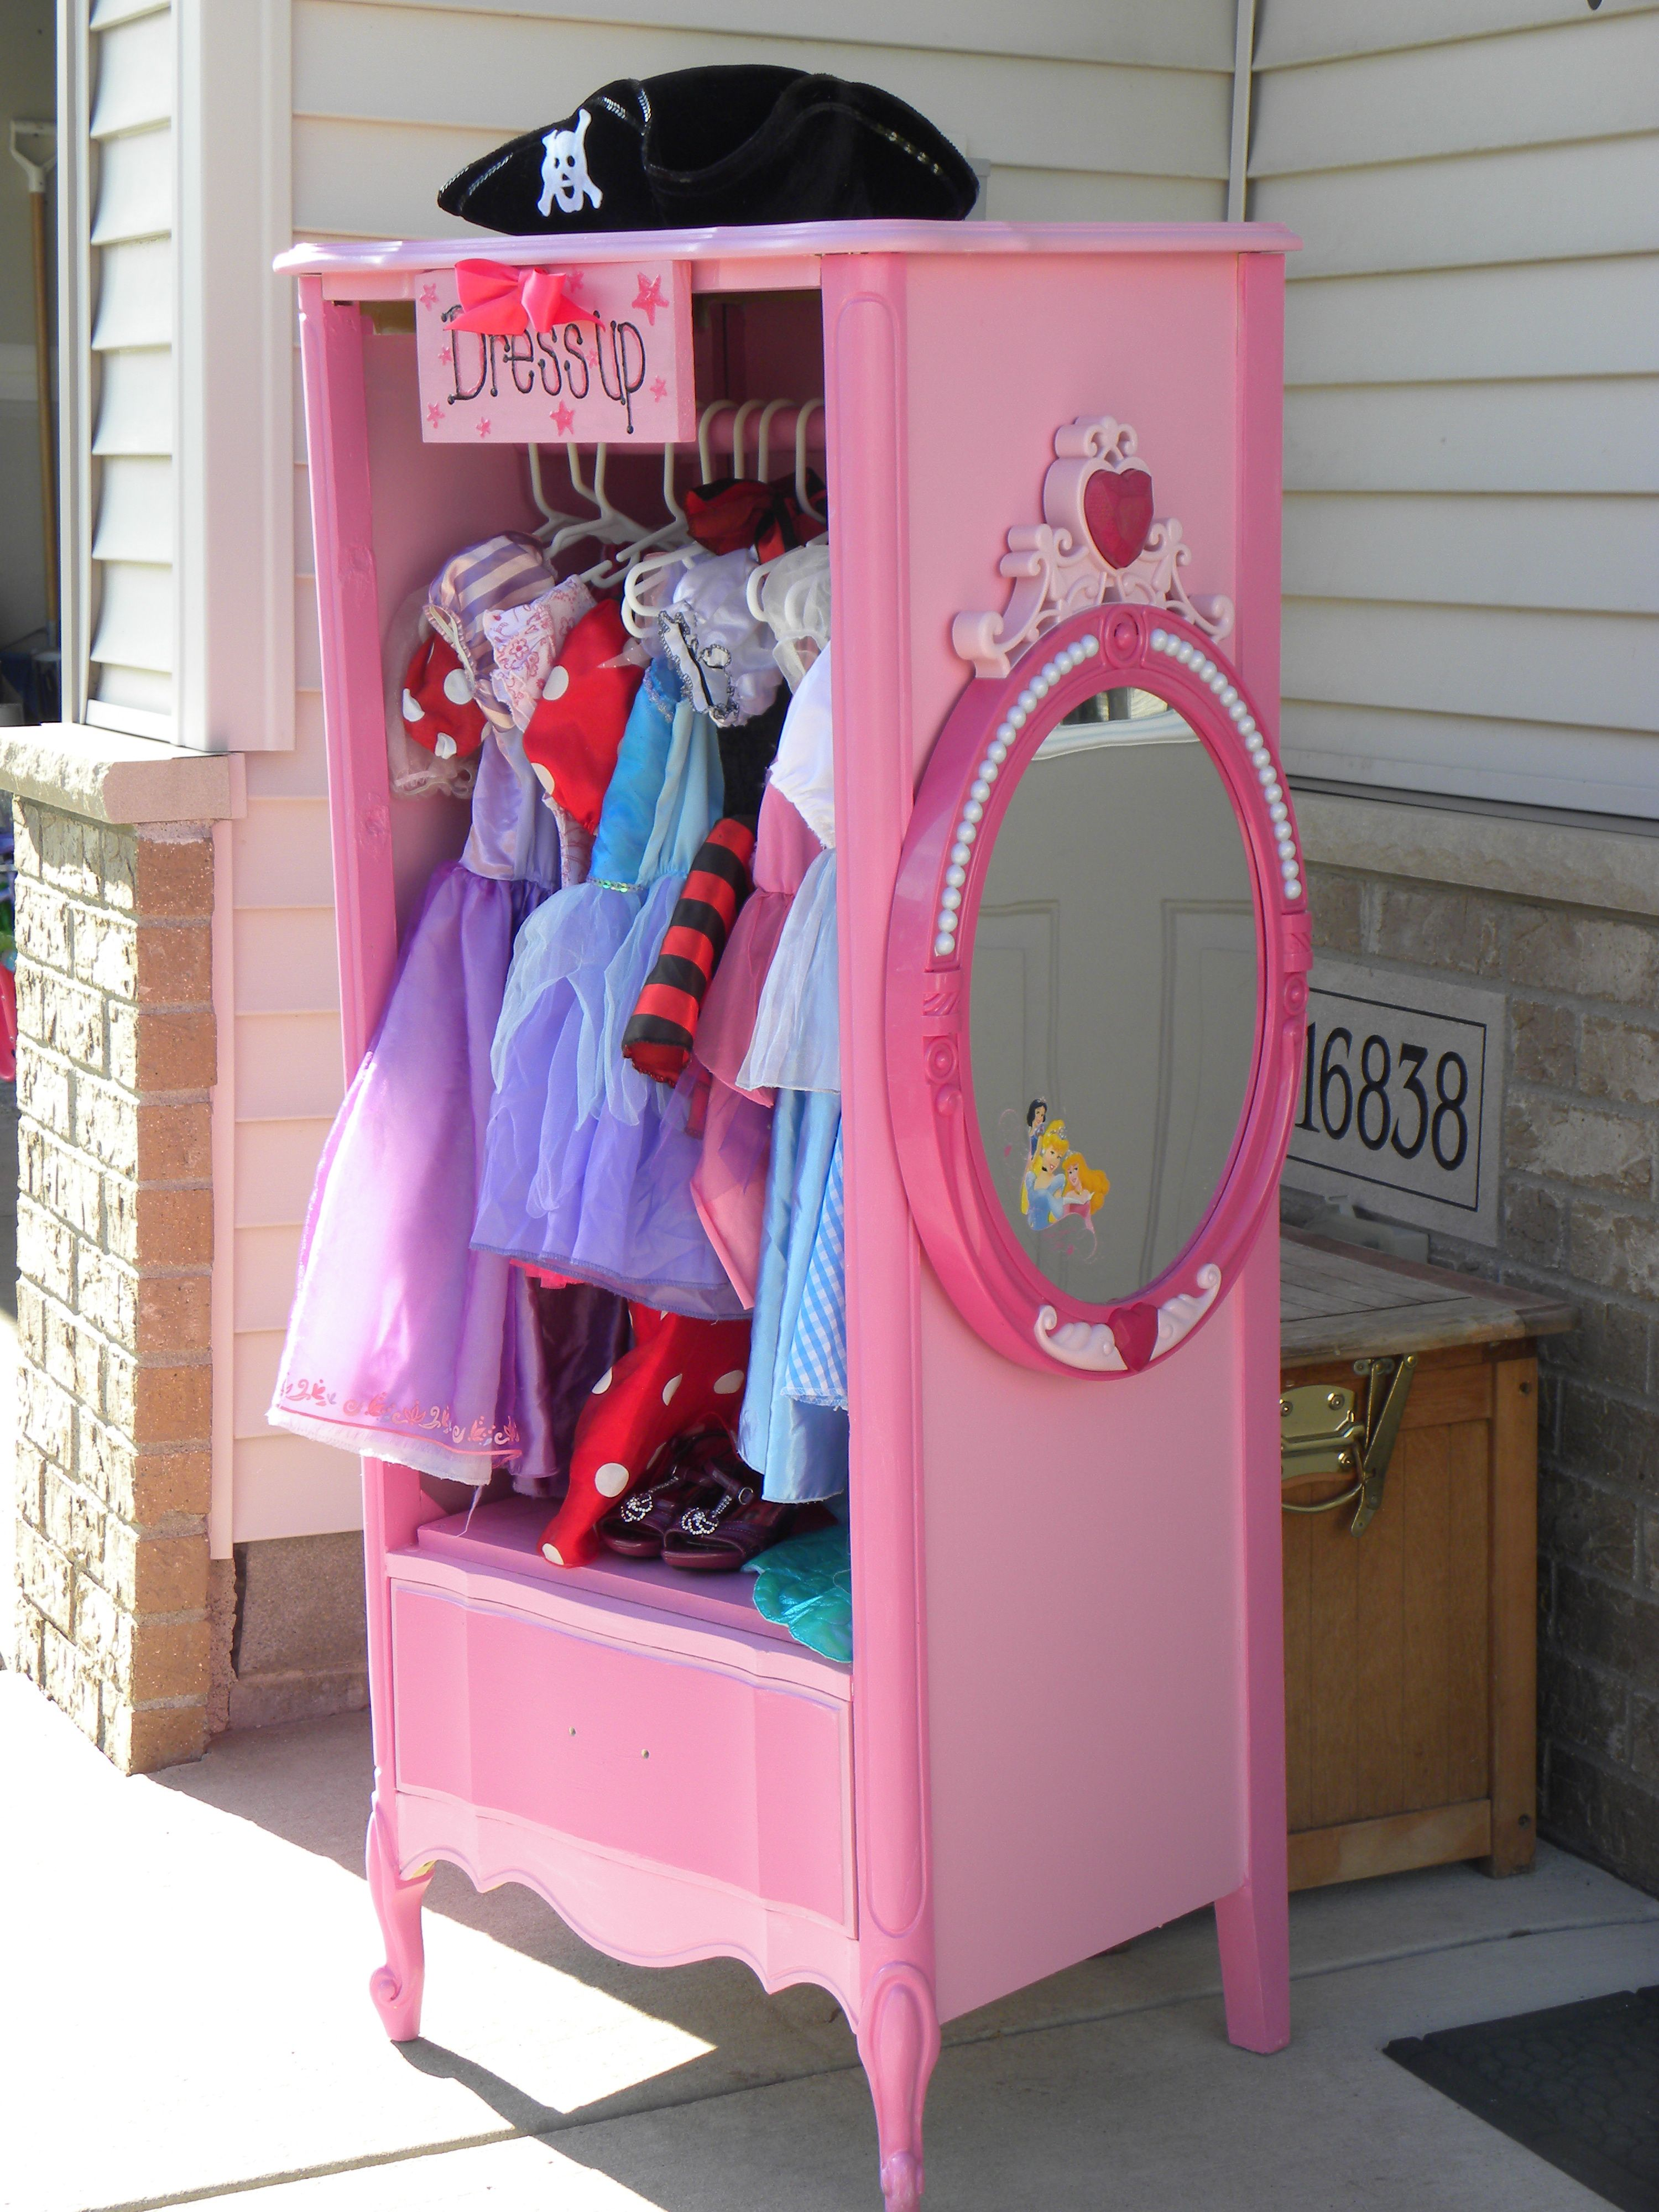 Cabinet for little girls dress up clothes made from an old dresser ...